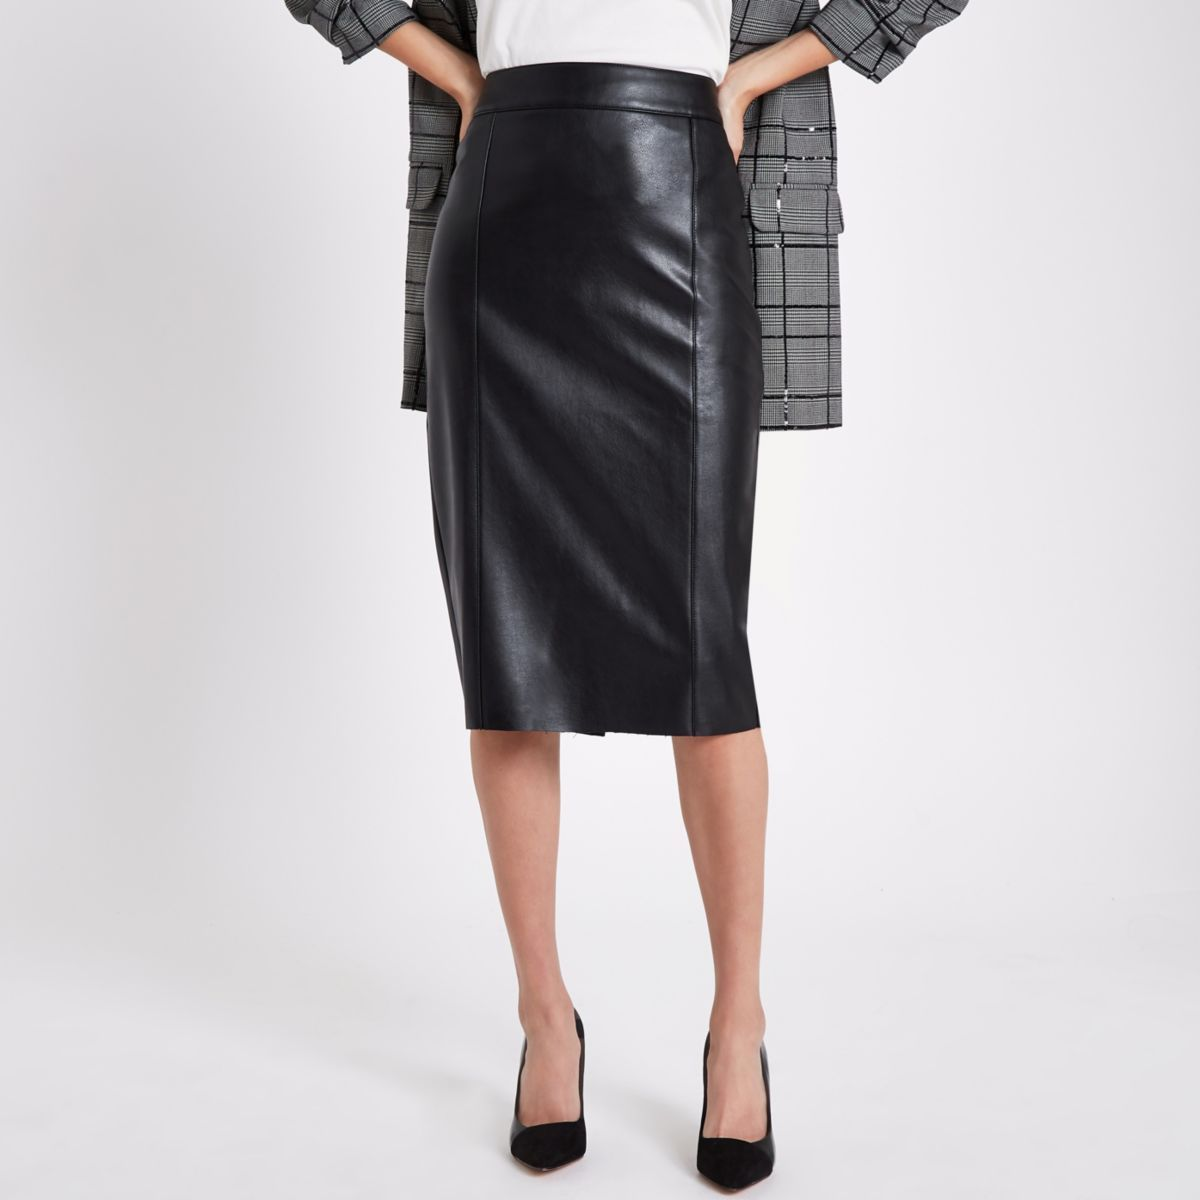 save off low cost size 7 Black faux leather pencil skirt | Faux leather pencil skirt ...